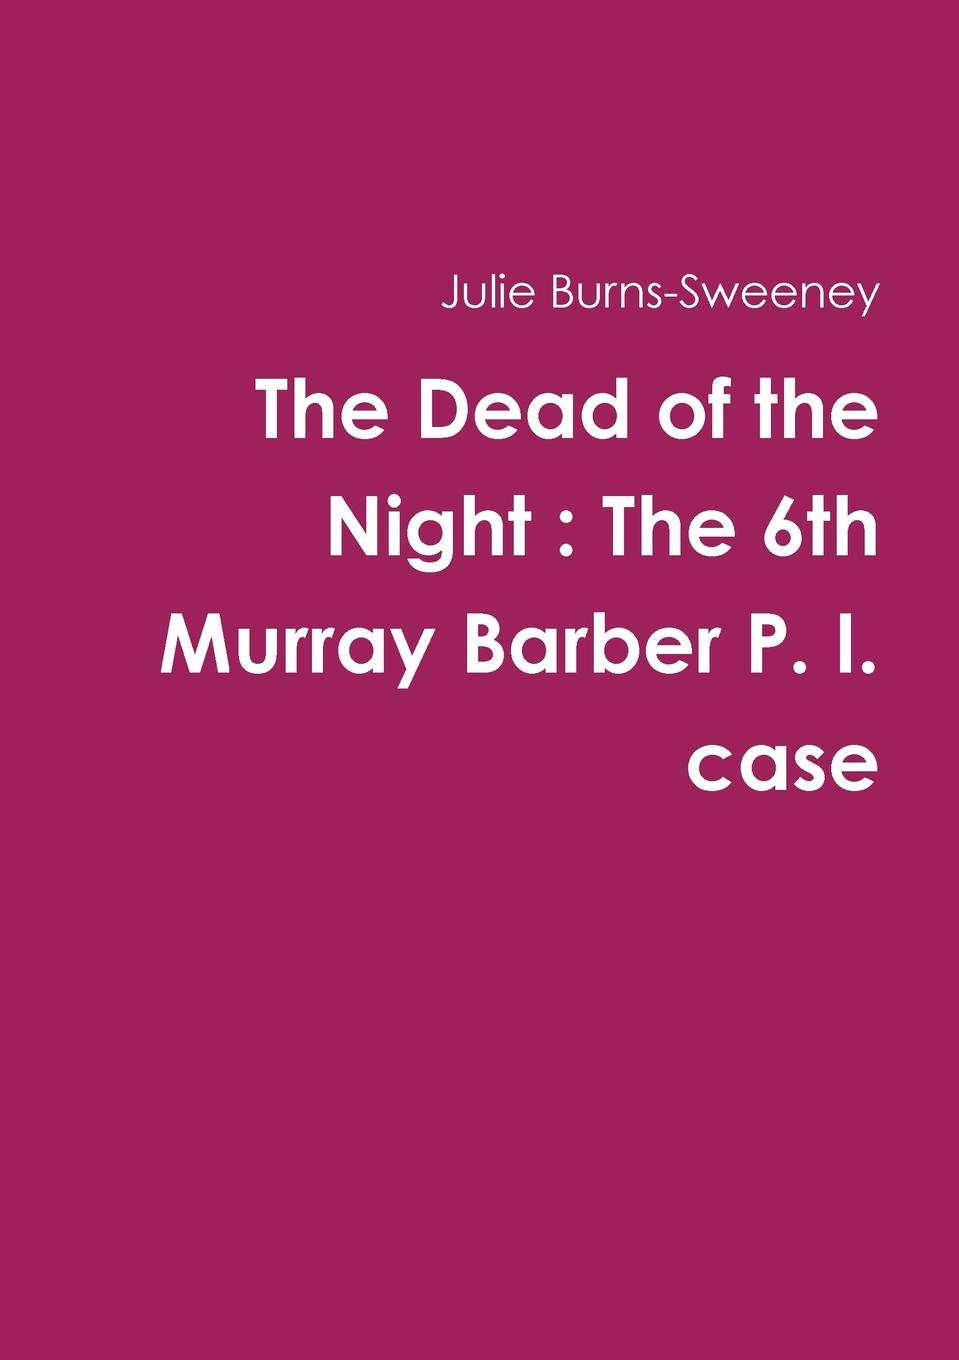 Julie Burns-Sweeney The Dead of the Night. The 6th Murray Barber P. I. case цена